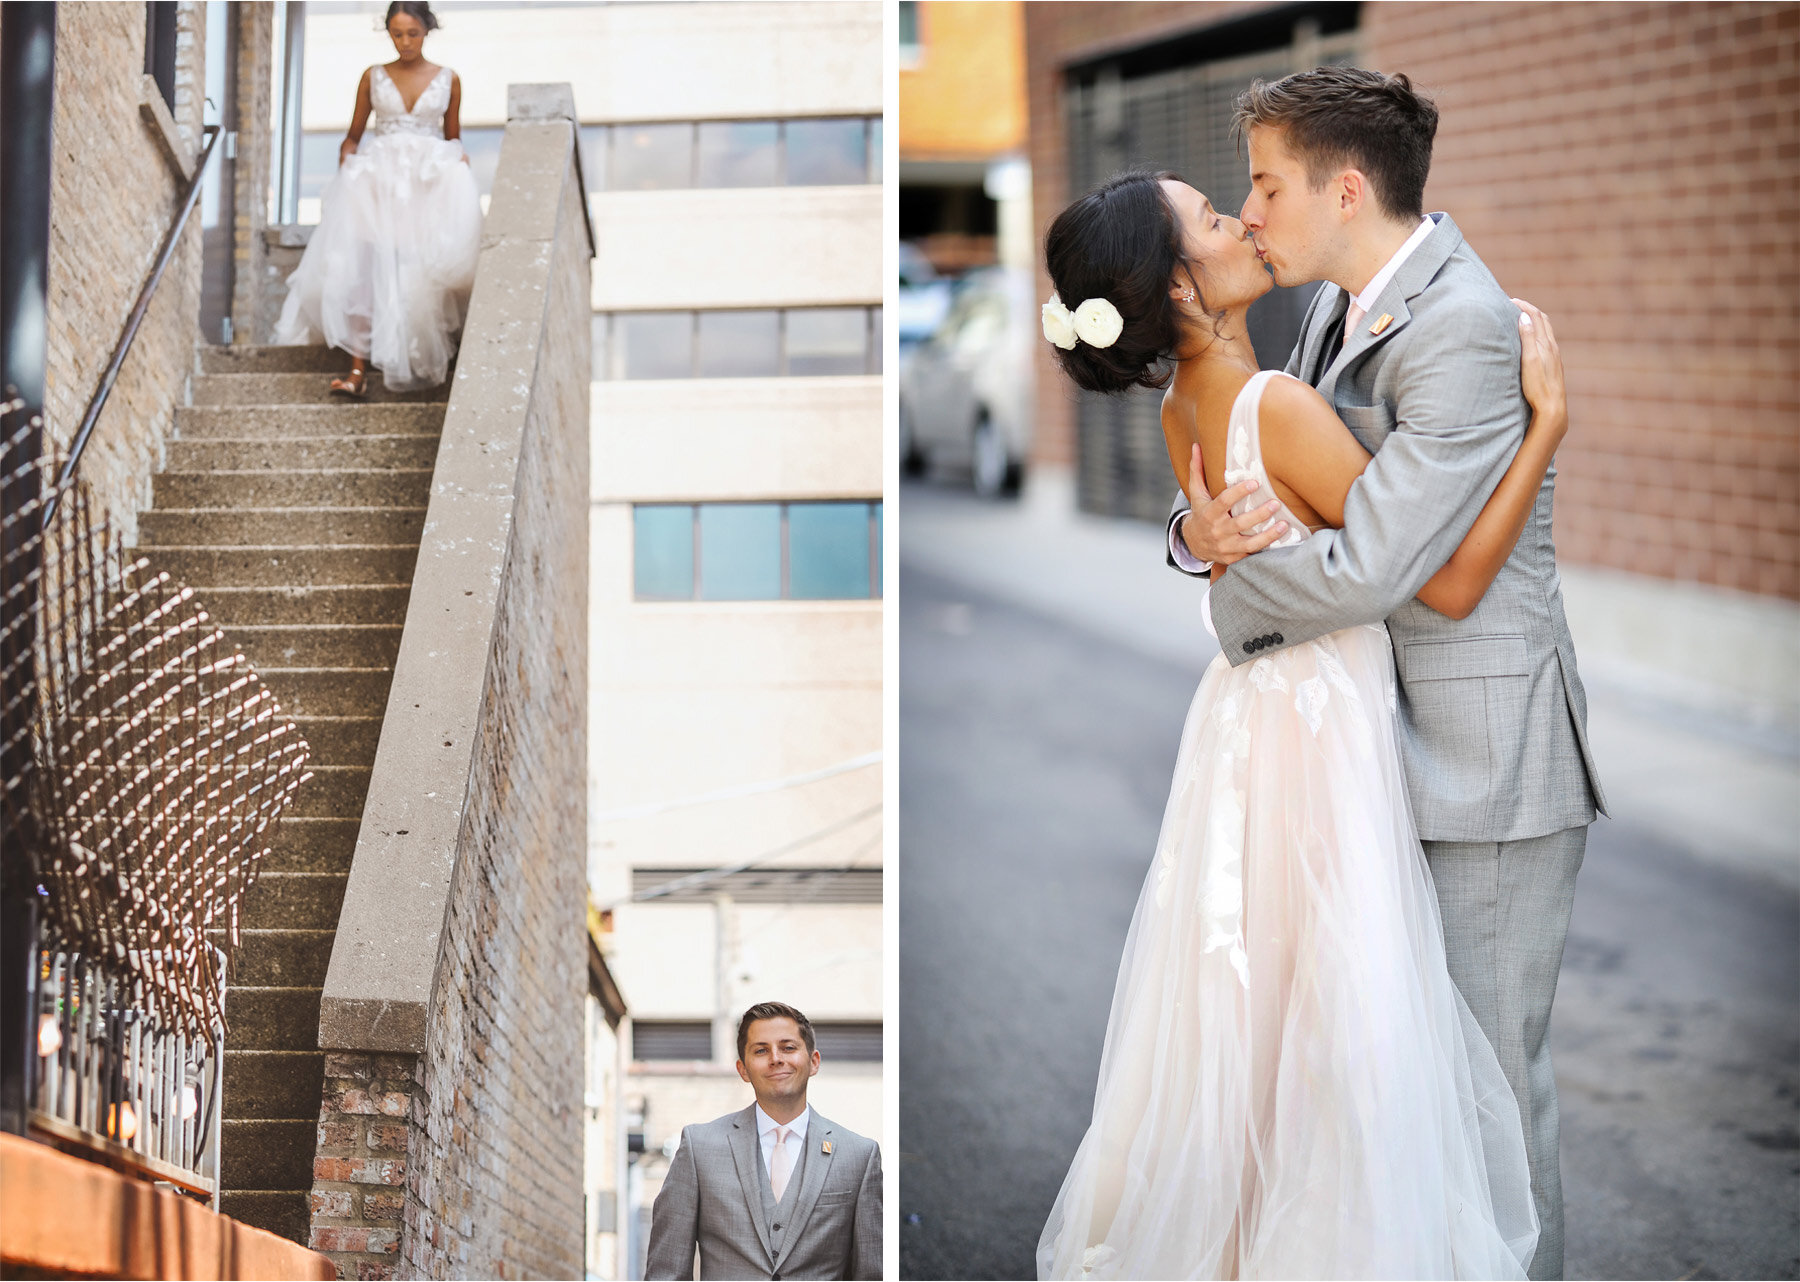 02-Wedding-by-Andrew-Vick-Photography-Chicago-Illinois-Bride-Groom-First-Look-Downtown-Brownstone-Ashley-and-Nicholas.jpg